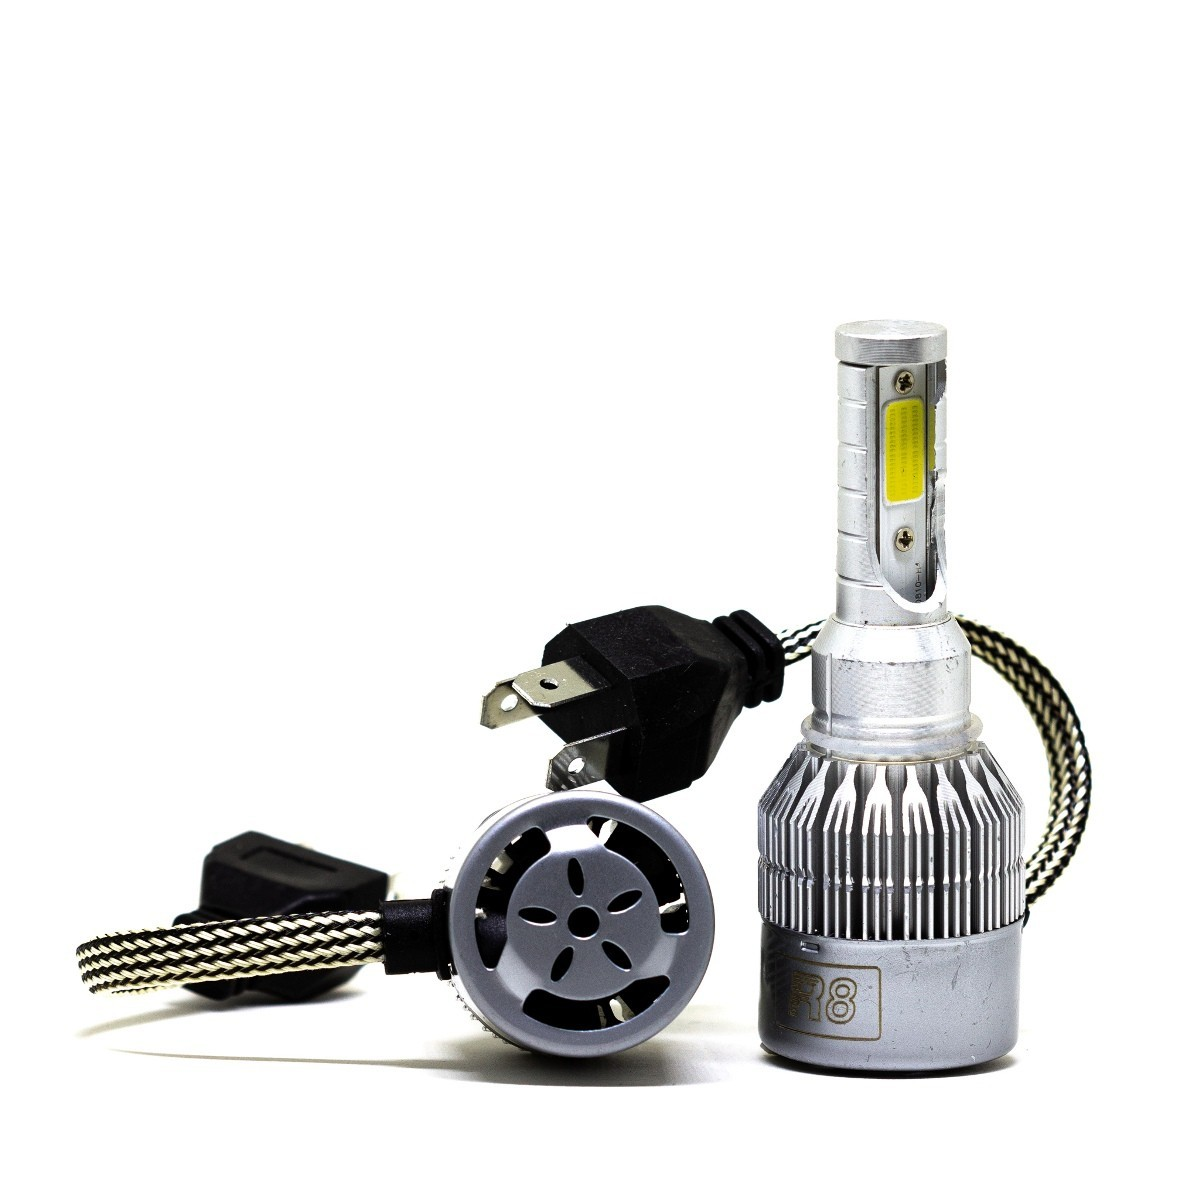 PAR LÂMPADA LED H3 6500K R8 HEADLIGHT COM COOLER SUPE BRANCA